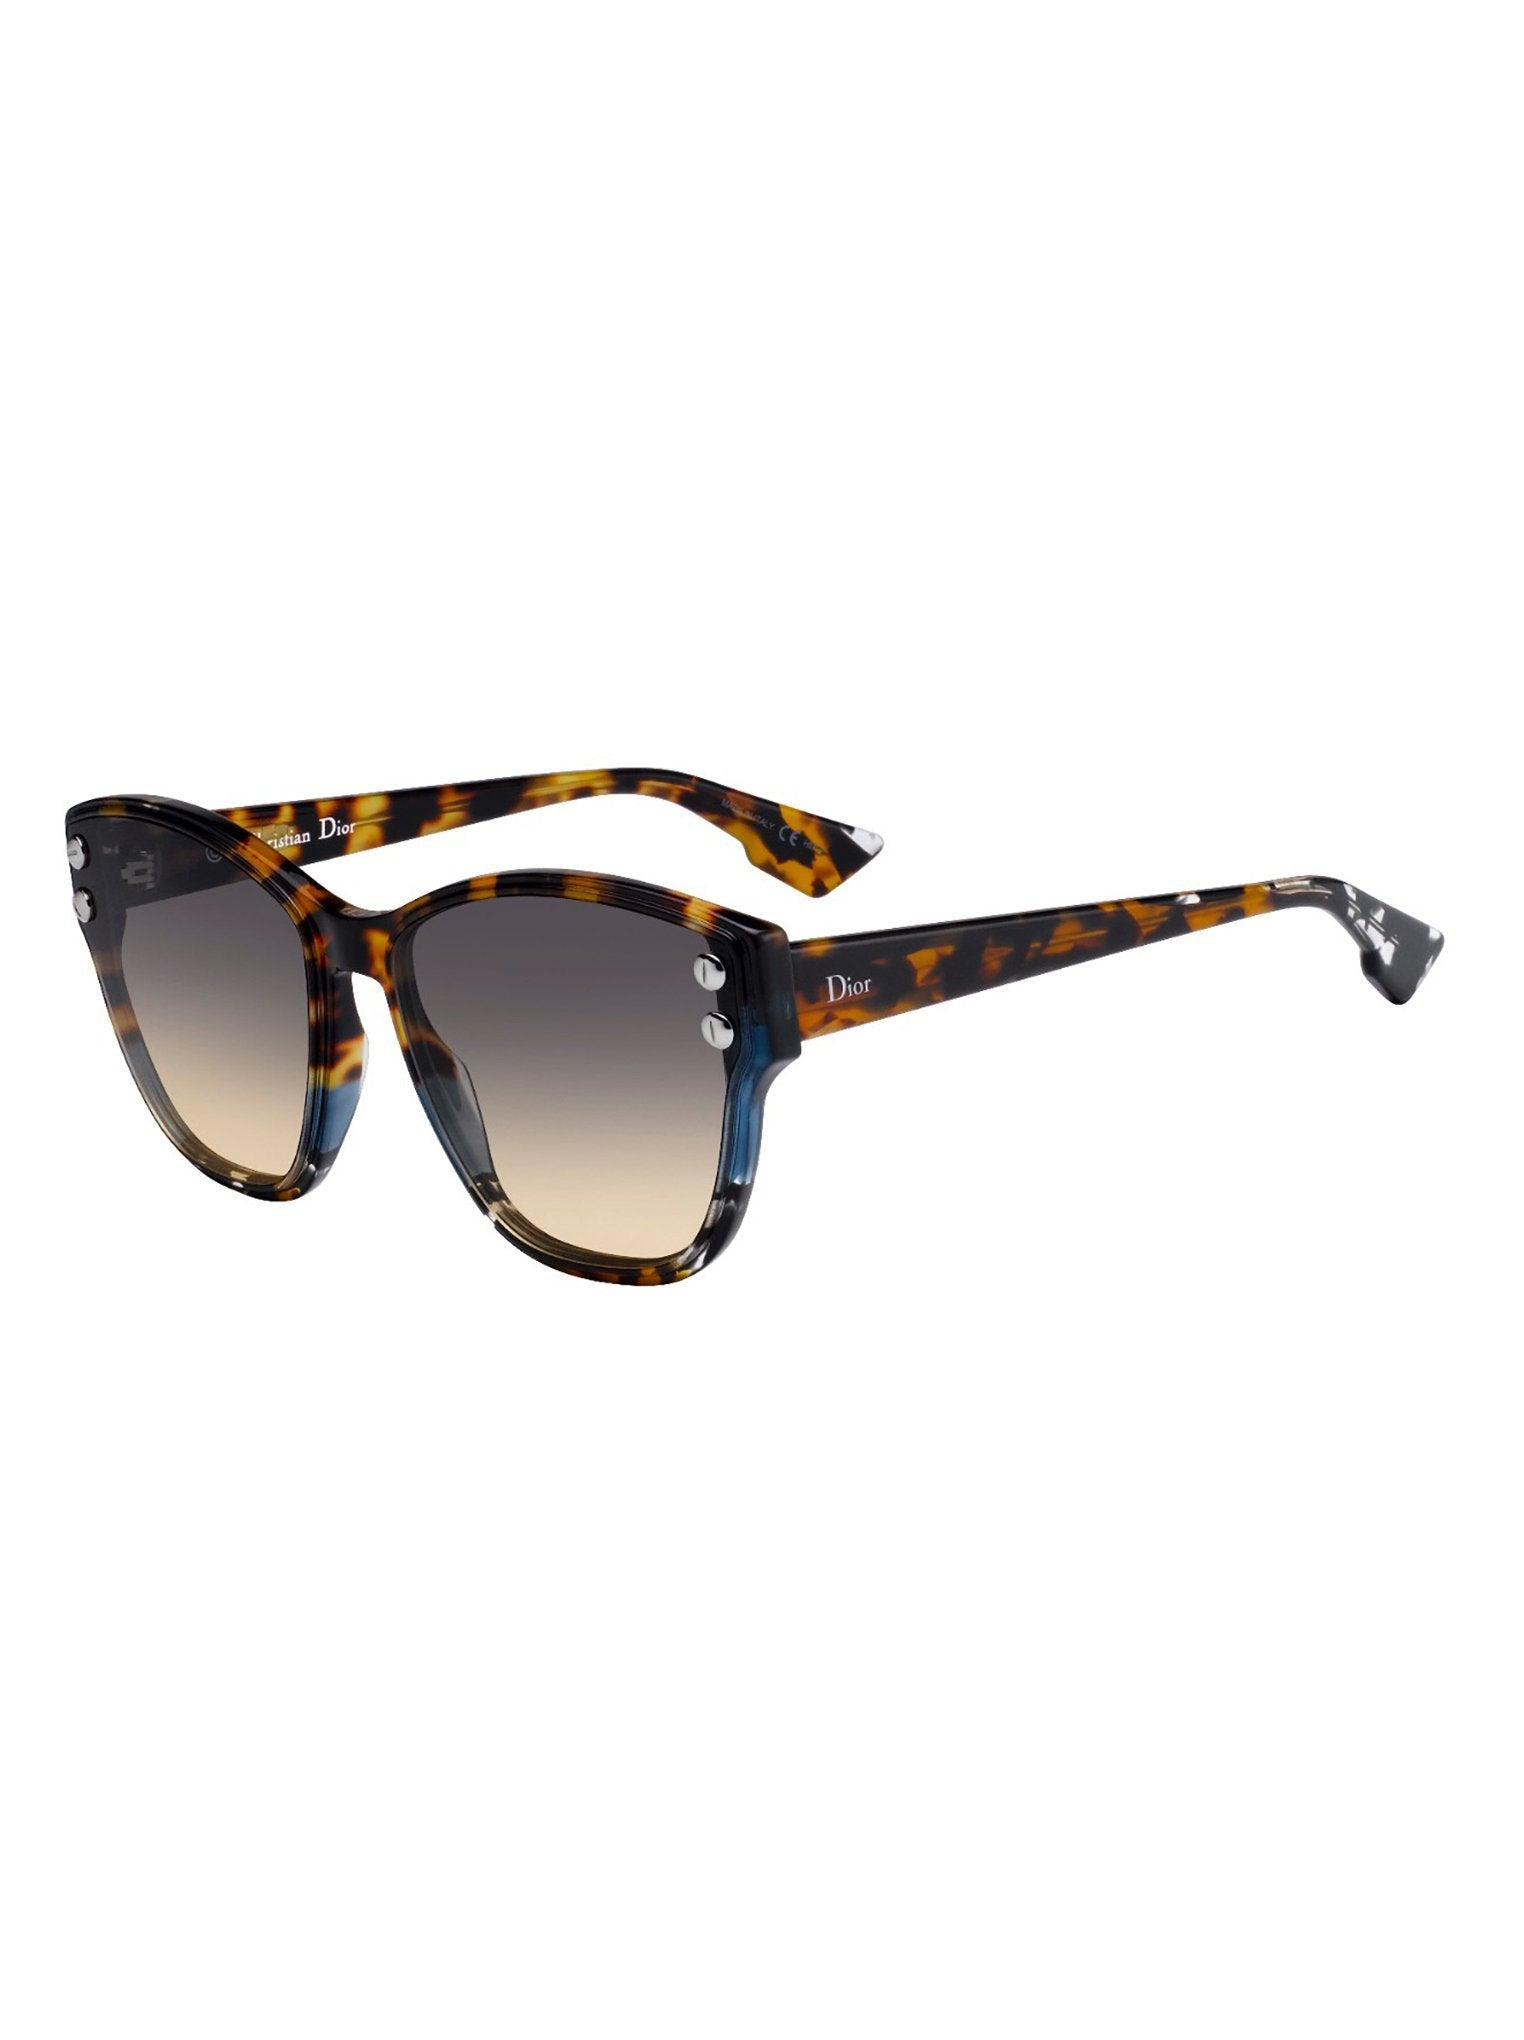 7d2072d1add19 Dior - Addict3 Sunglasses - Blue Havana   Black Brown Green - ForwardModa